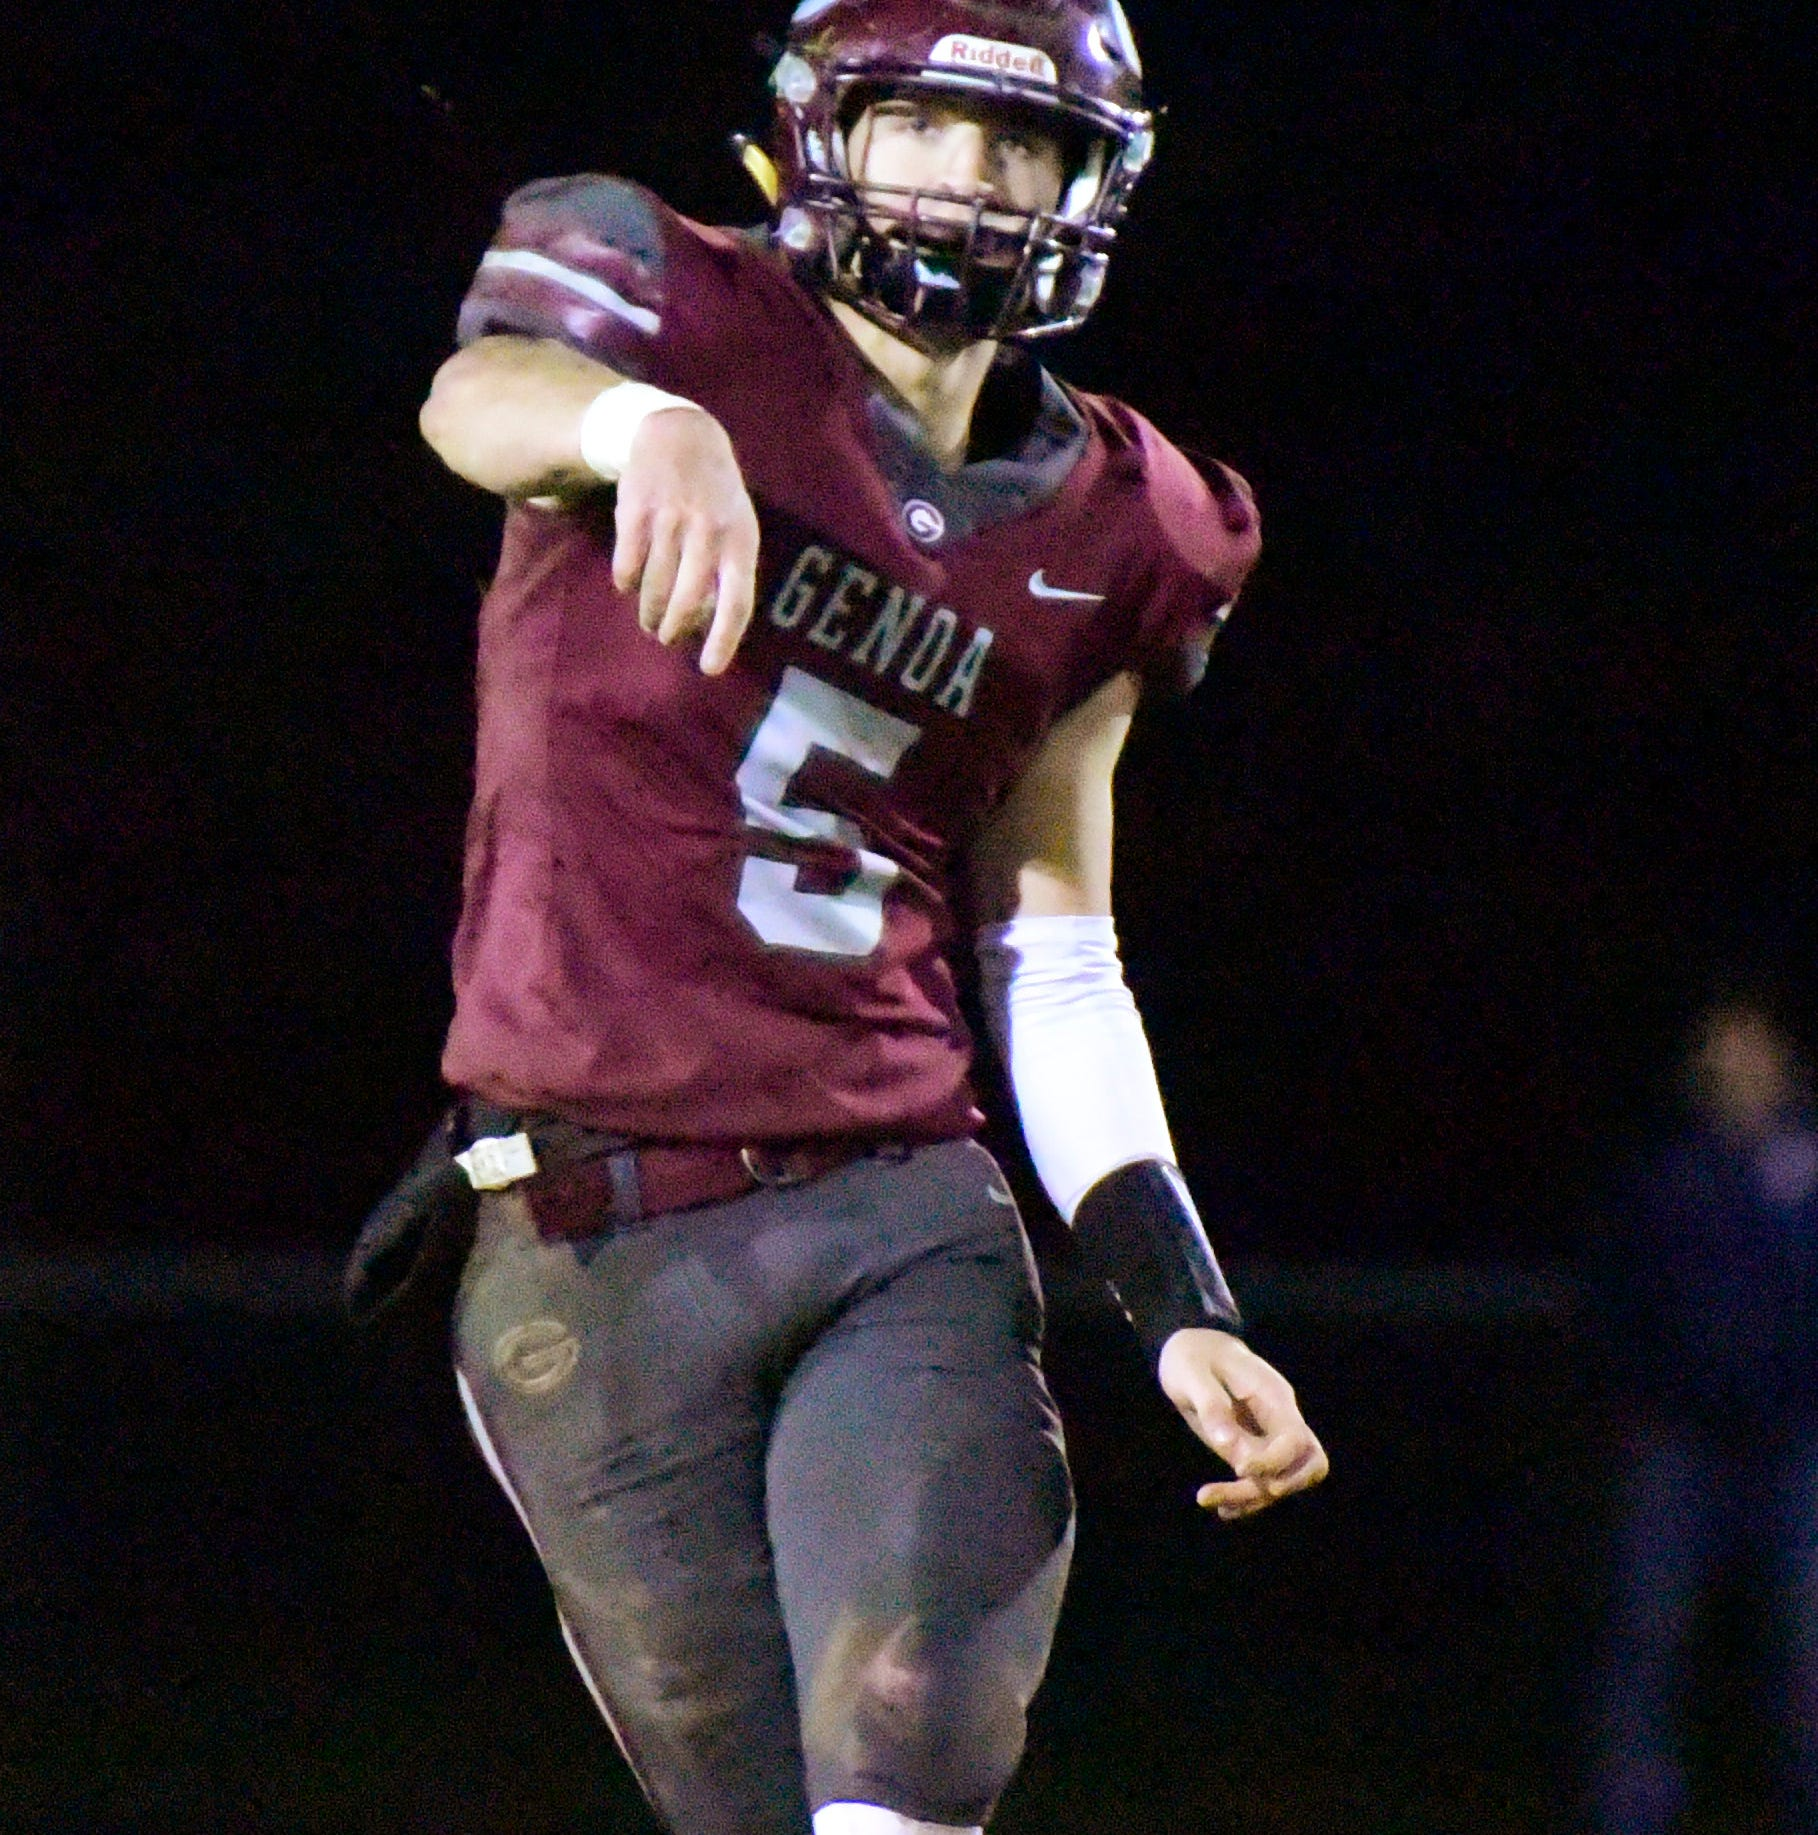 Genoa's Plantz Messenger/Herald player of the year on offense